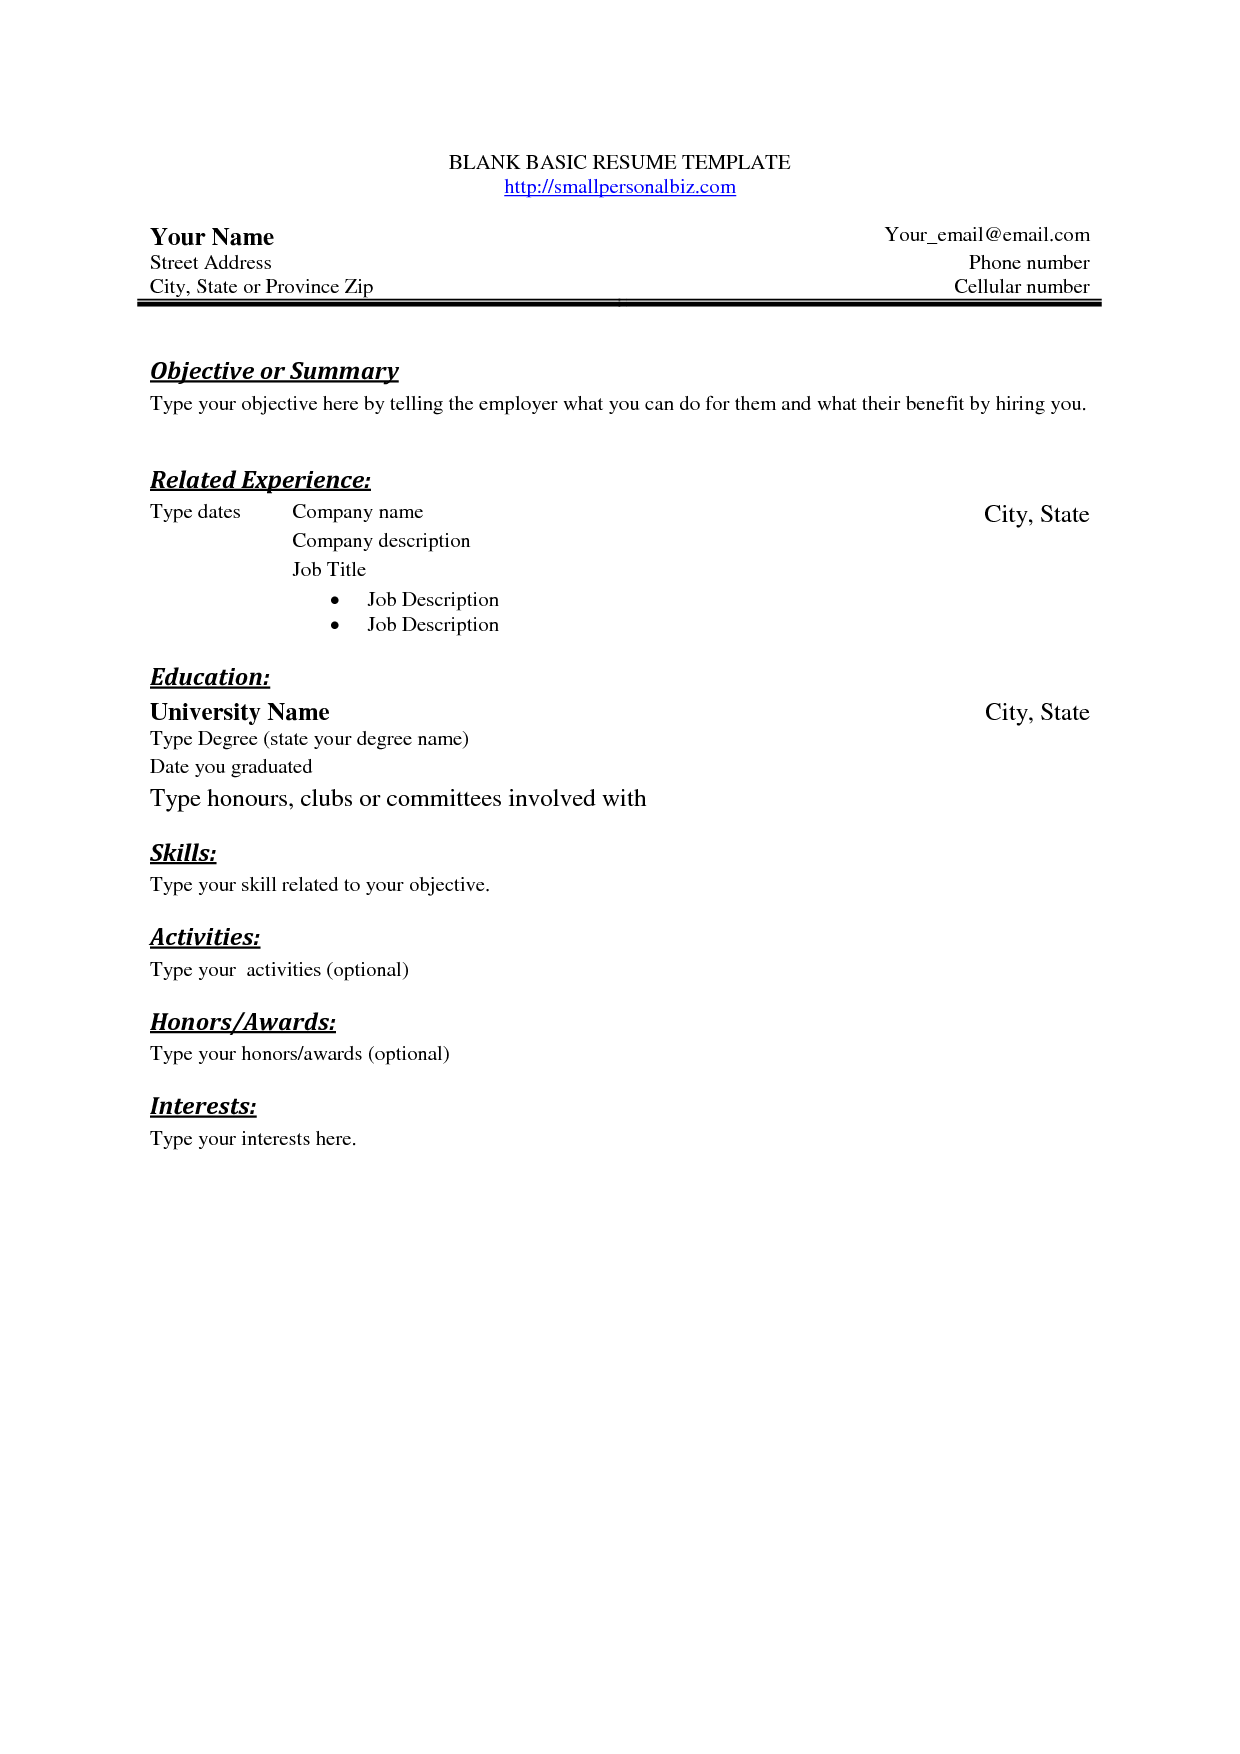 Blank Resume Template Pdf Stylist And Luxury Simple Resume Layout 10 Free Basic Blank Resume